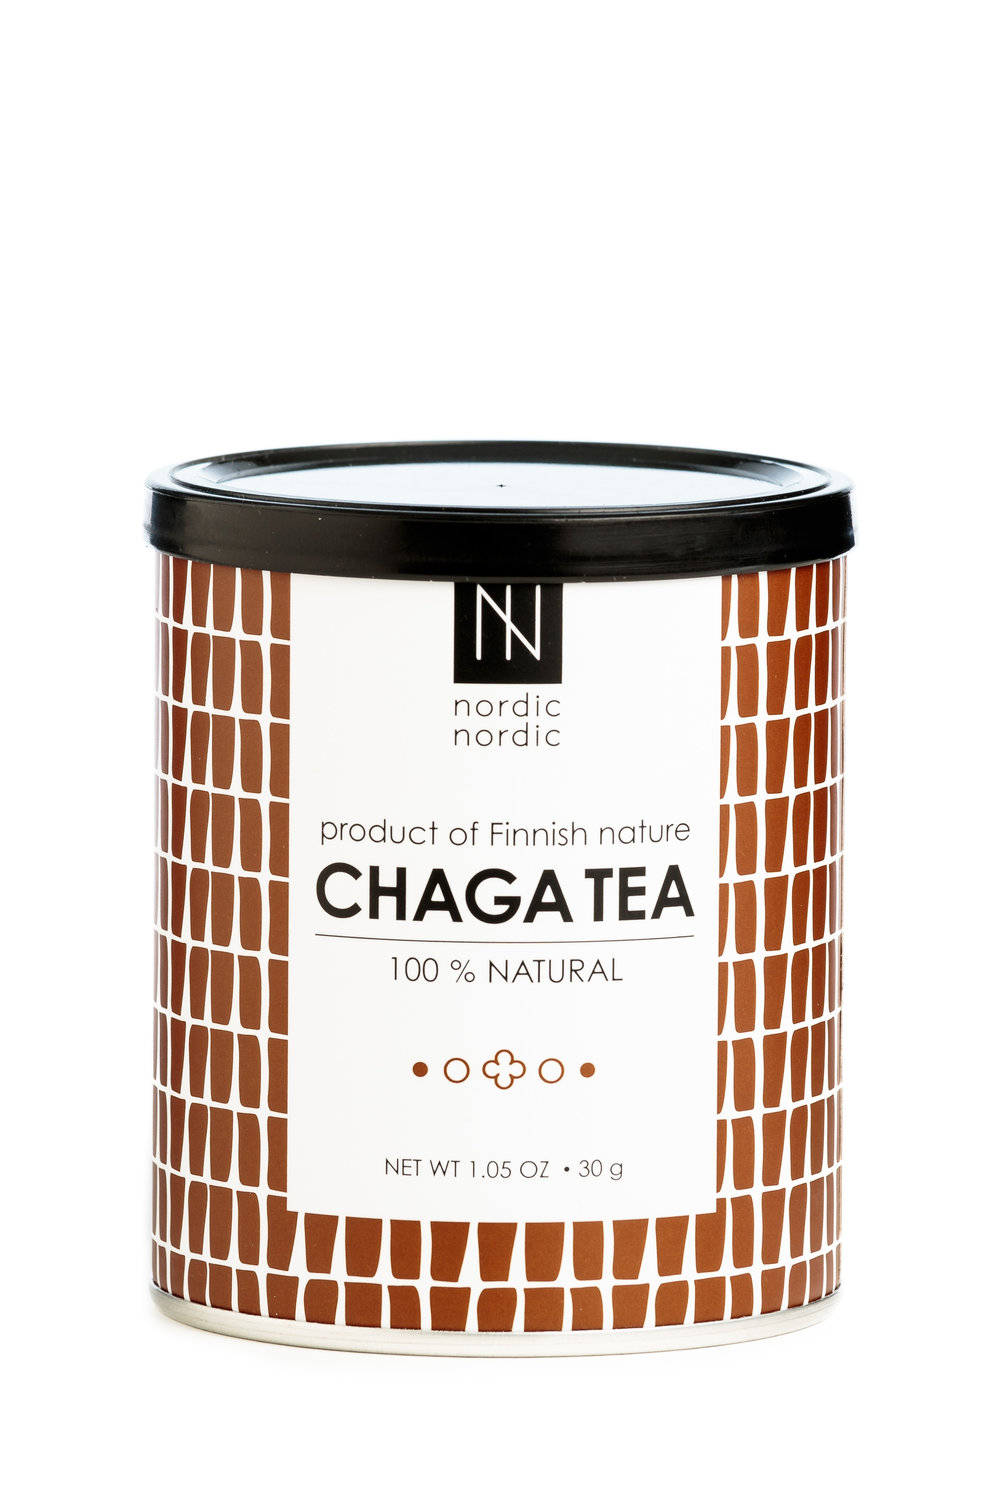 Natural Chaga - We cannot believe how popular natural chaga has been but I guess it is not hard to believe considering the high, unparalleled quality & purity.